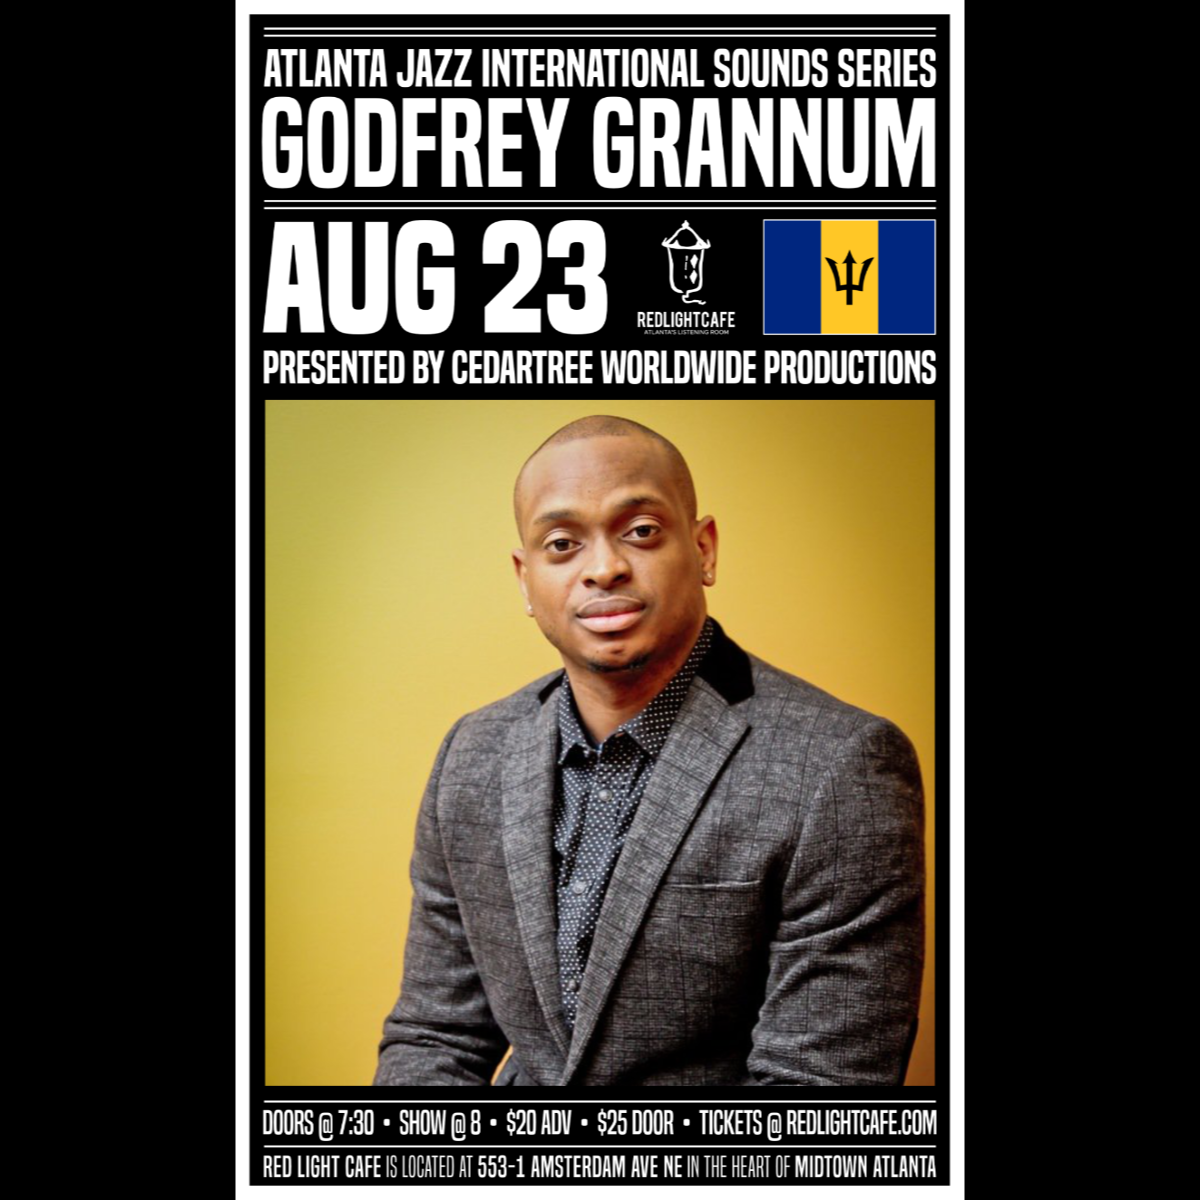 Atlanta Jazz International Sounds Series: Godfrey Grannum — Red